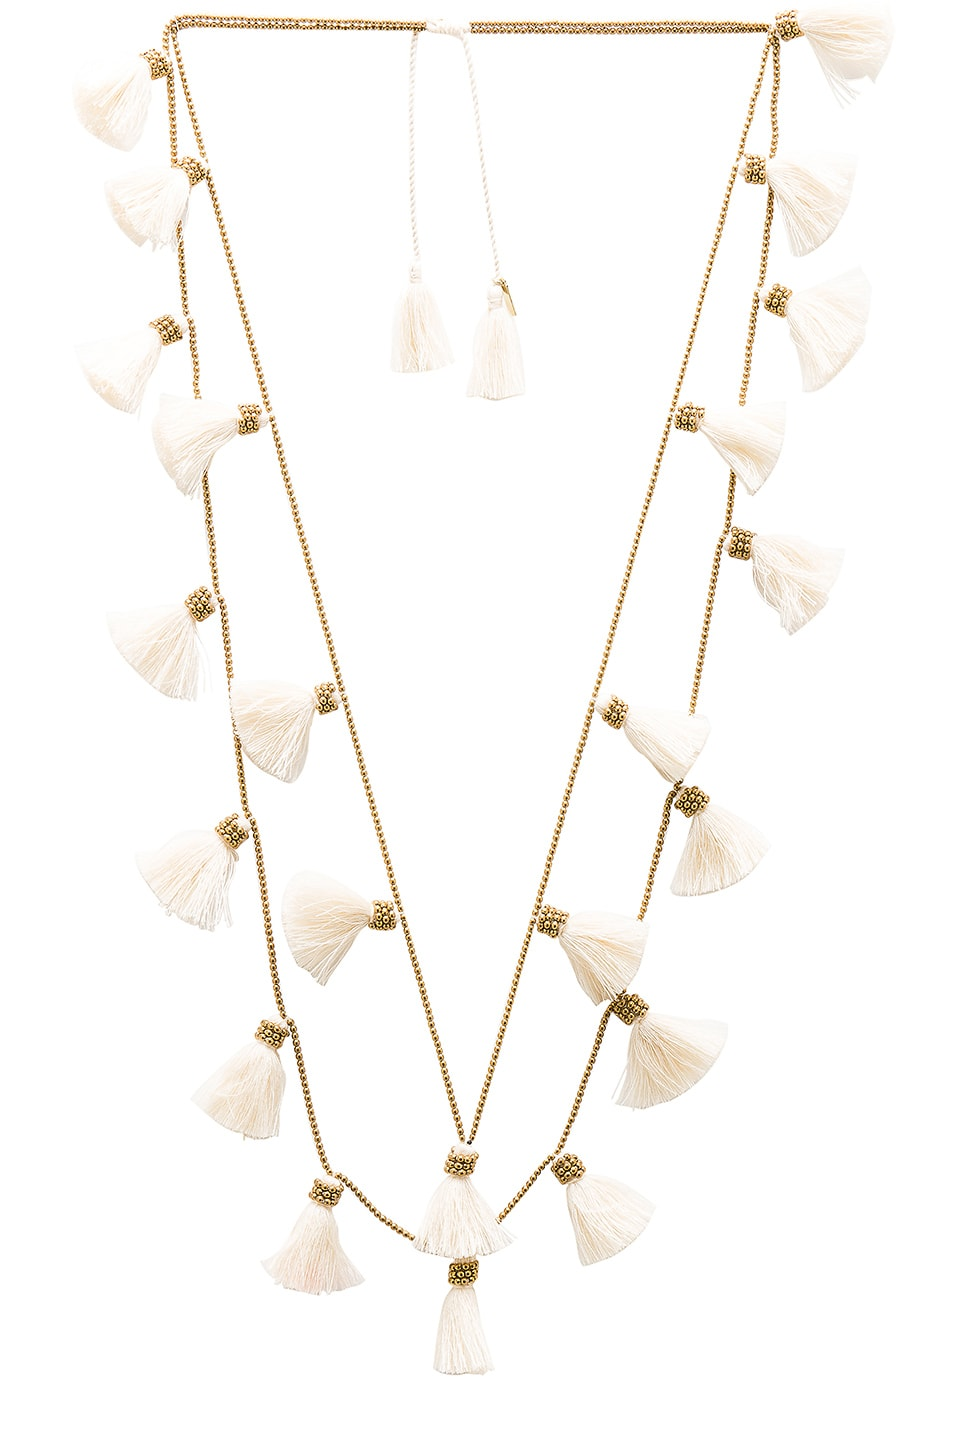 Natalie B Jewelry Dara Tassel Necklace in Gold & Ivory